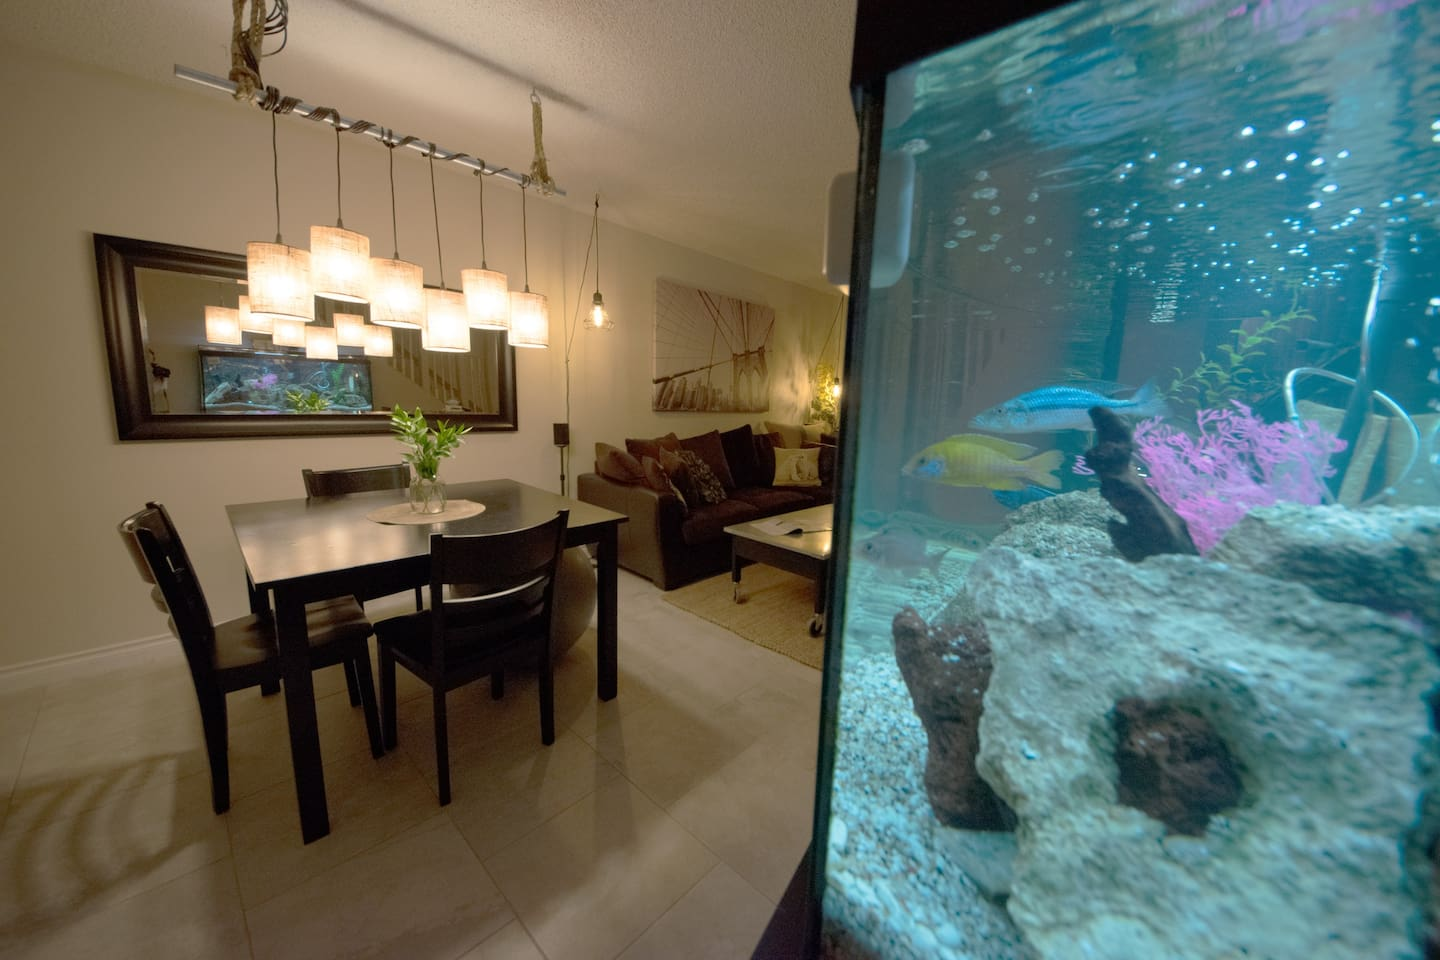 The living room includes a professionally maintained aquarium.